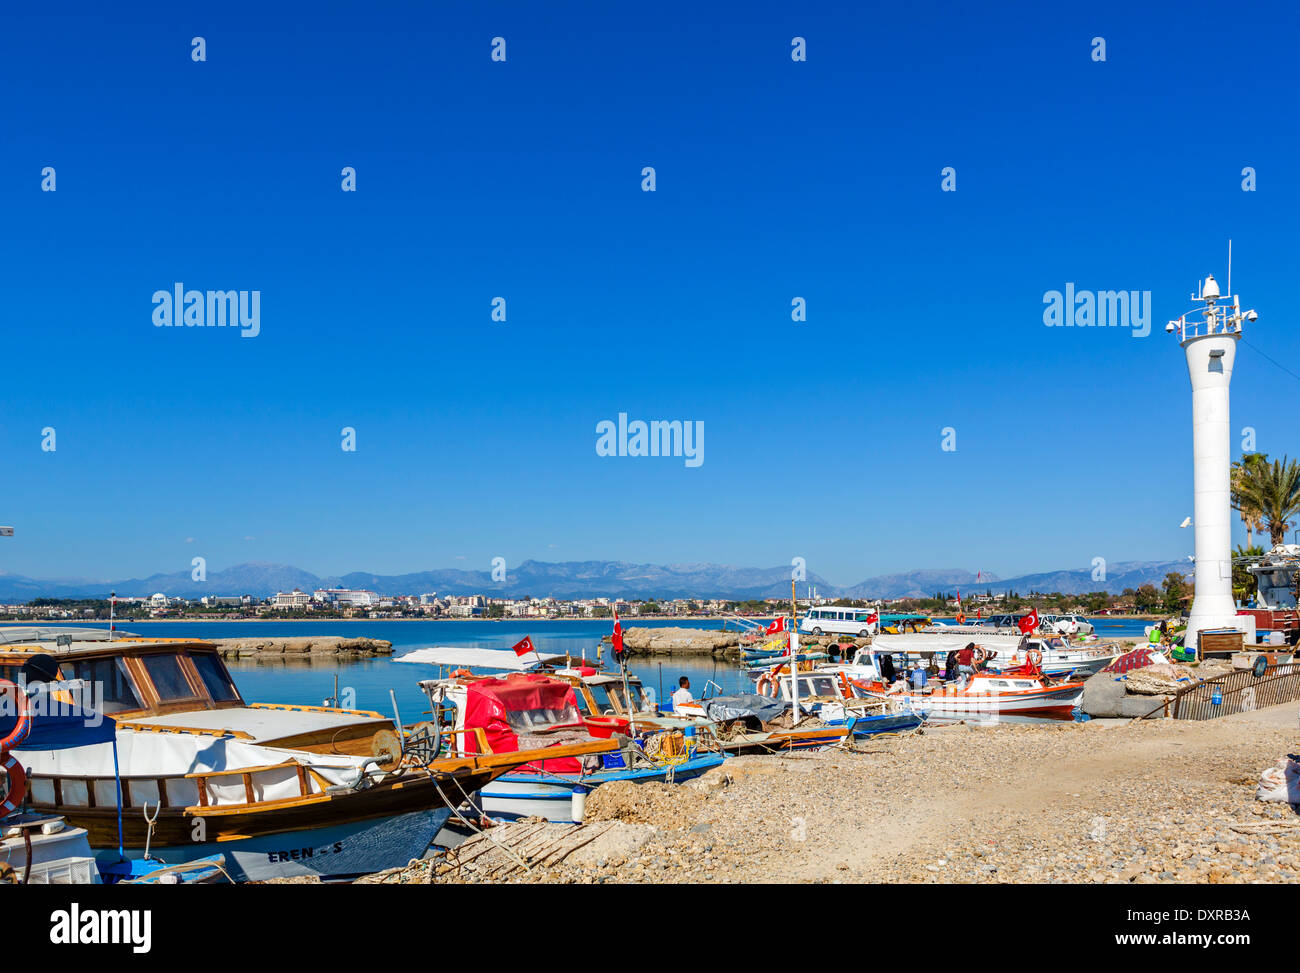 Fishing boats in the old town harbour looking towards beaches and hotel zone to west of the town, Side, Antalya Province, Turkey Stock Photo